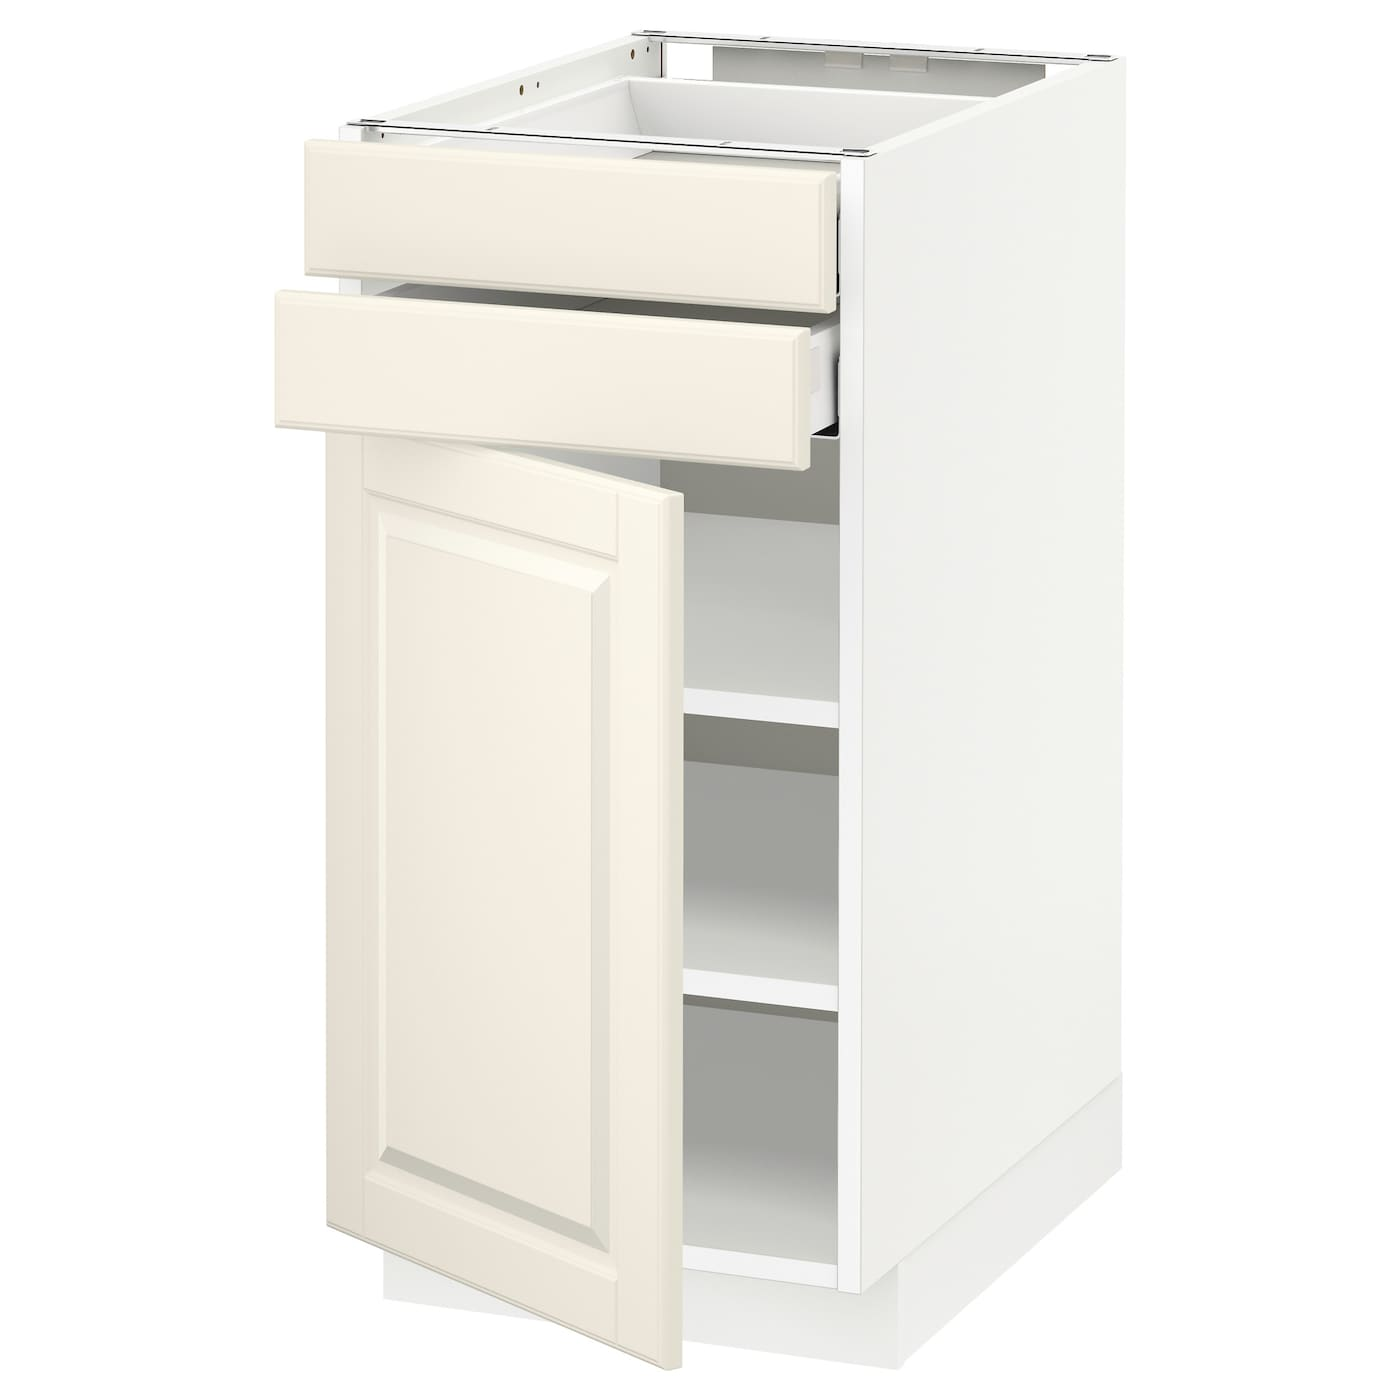 metod maximera base cabinet w door 2 drawers white bodbyn off white 40 x 60 cm ikea. Black Bedroom Furniture Sets. Home Design Ideas